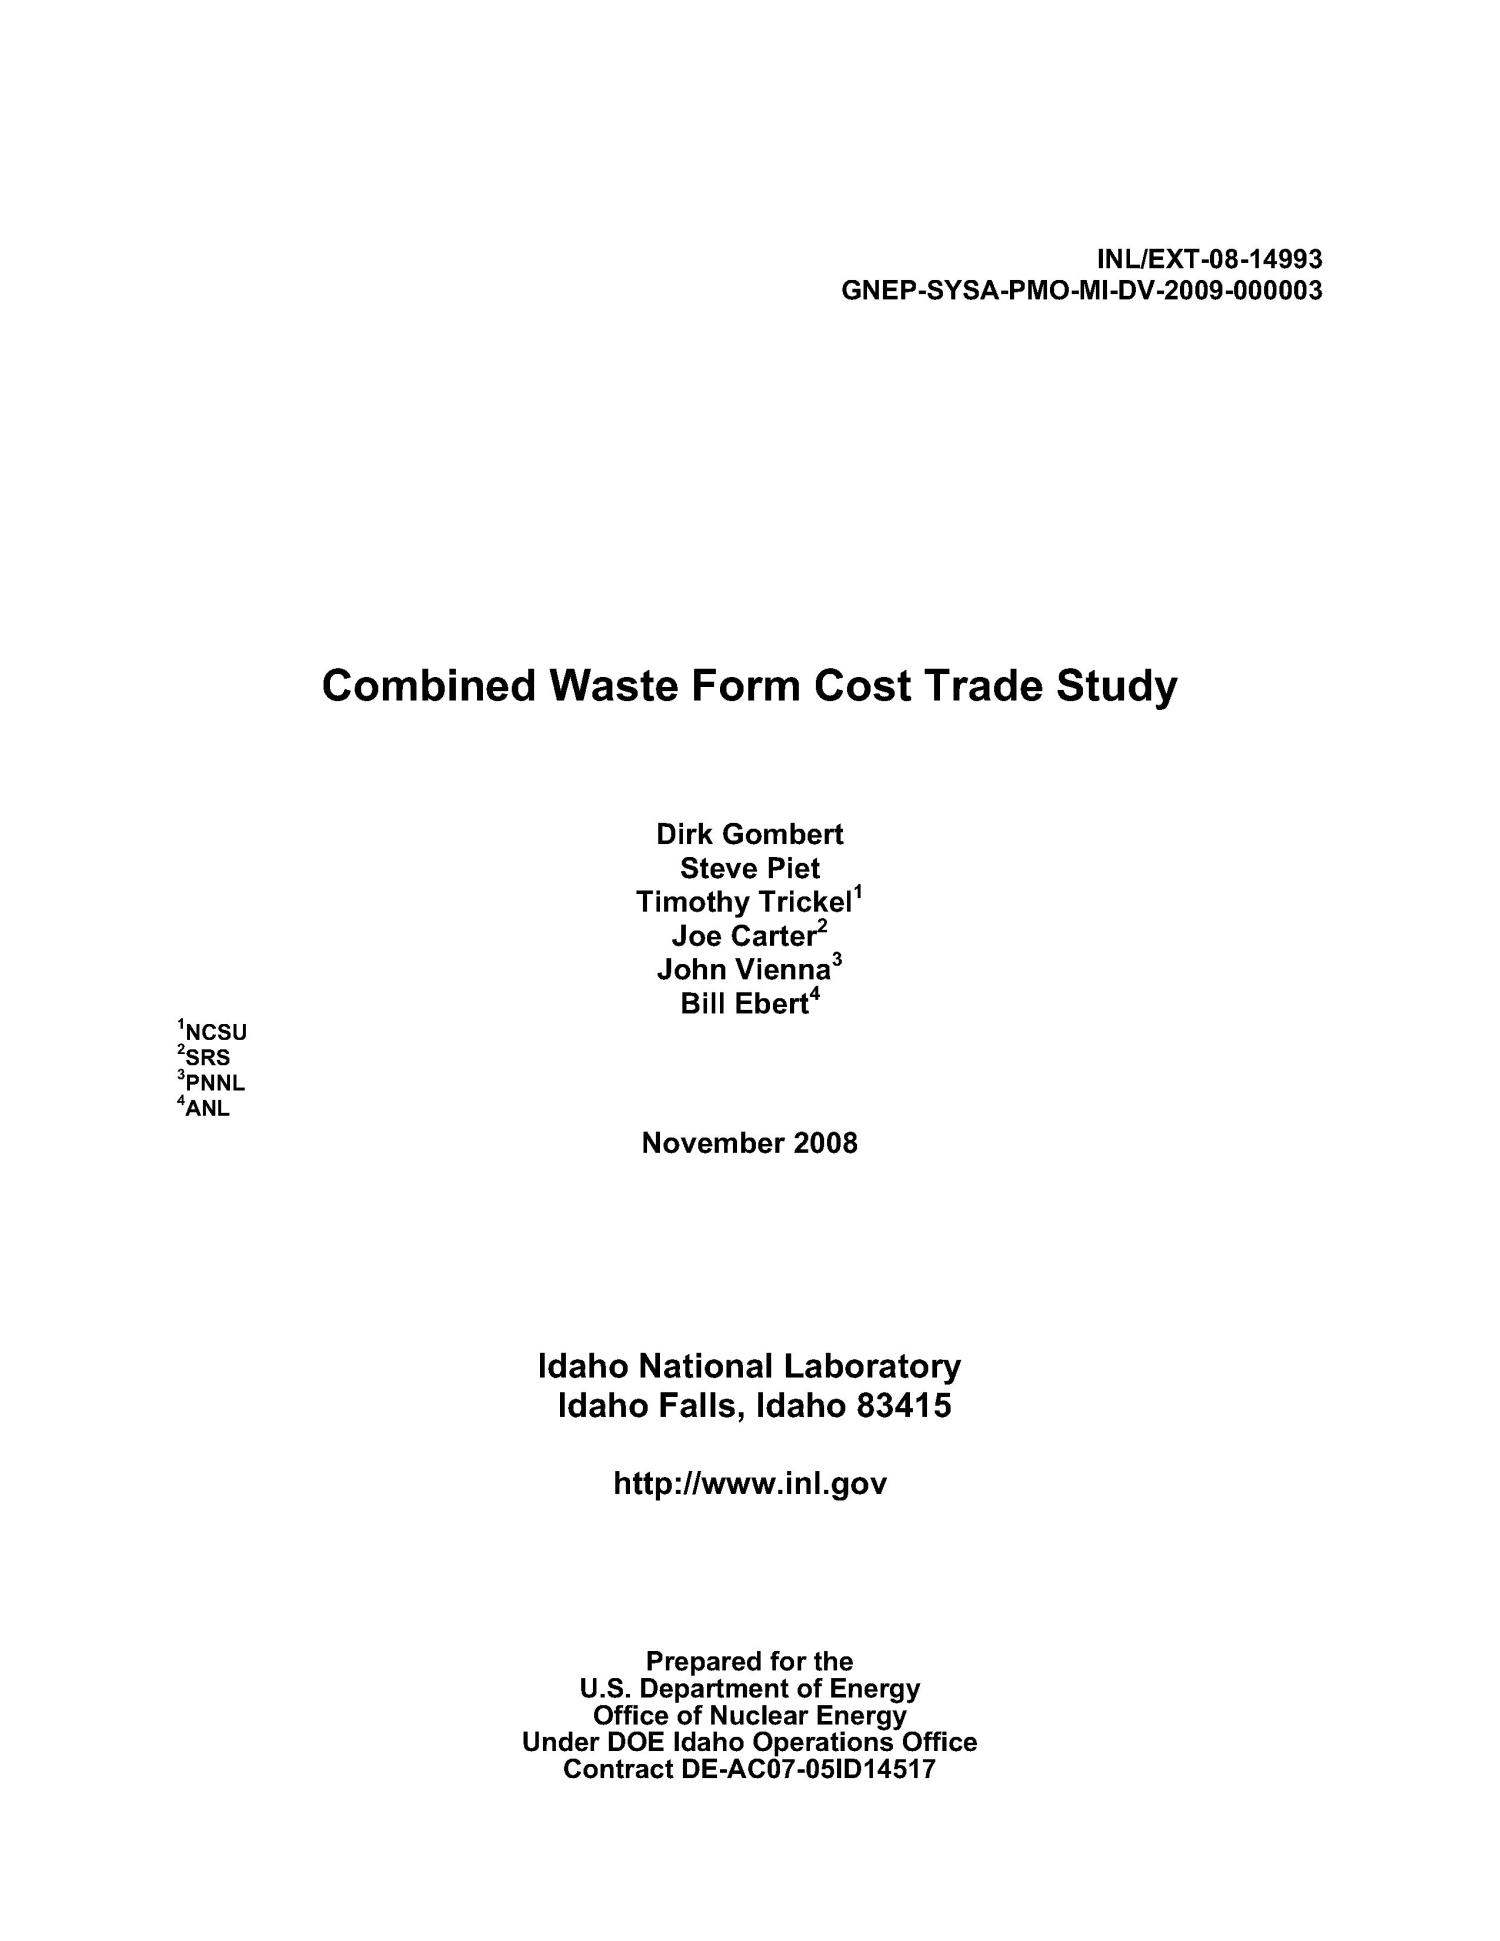 Combined Waste Form Cost Trade Study                                                                                                      [Sequence #]: 2 of 38